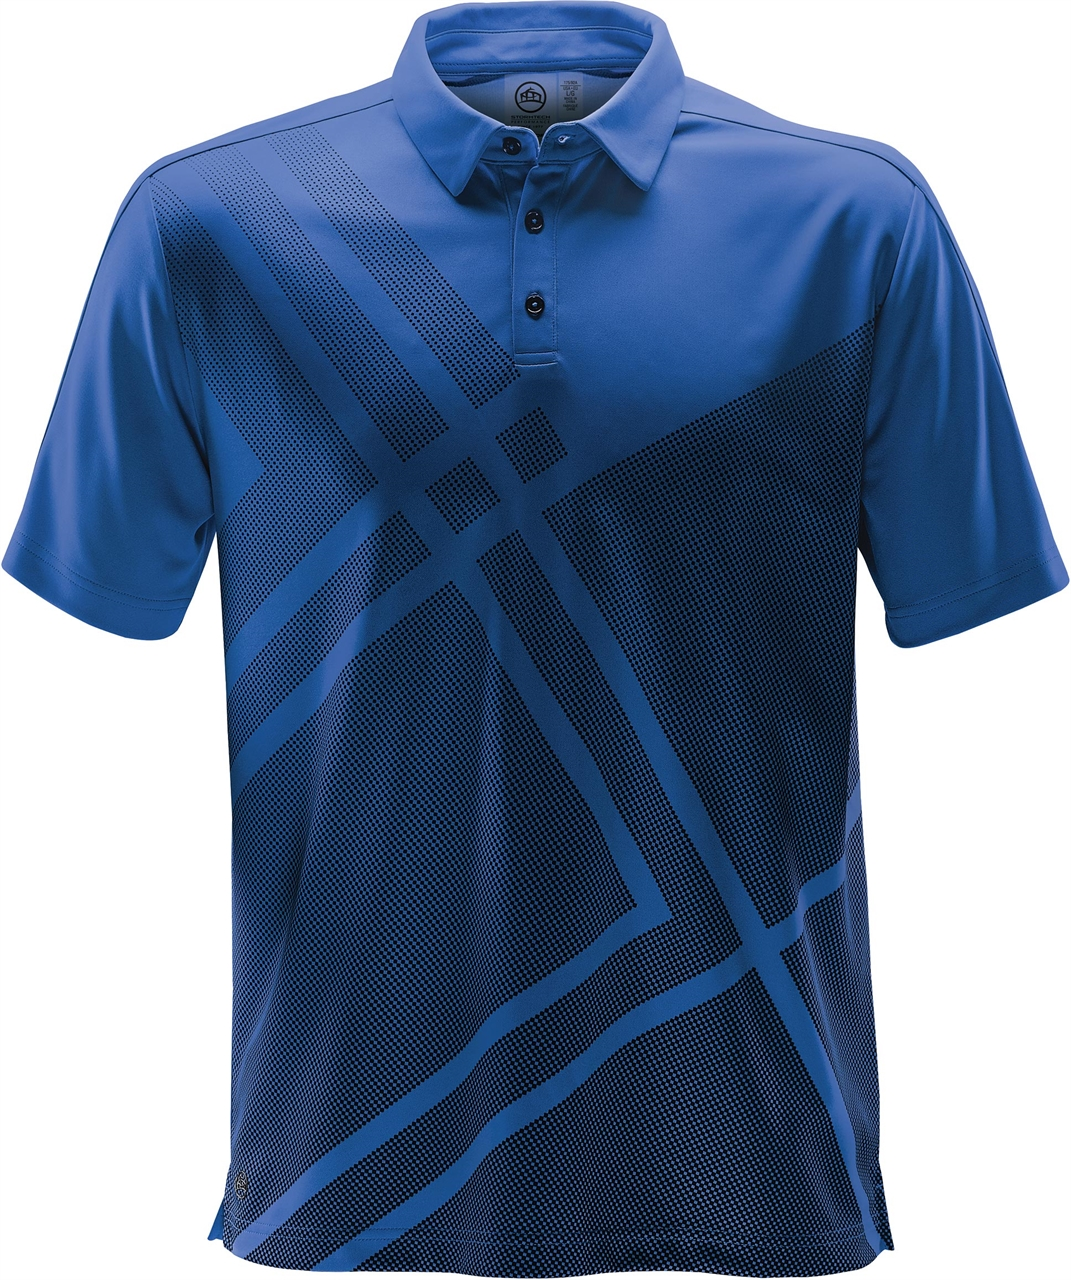 Picture of STORMTECH Men's Reflex Polo